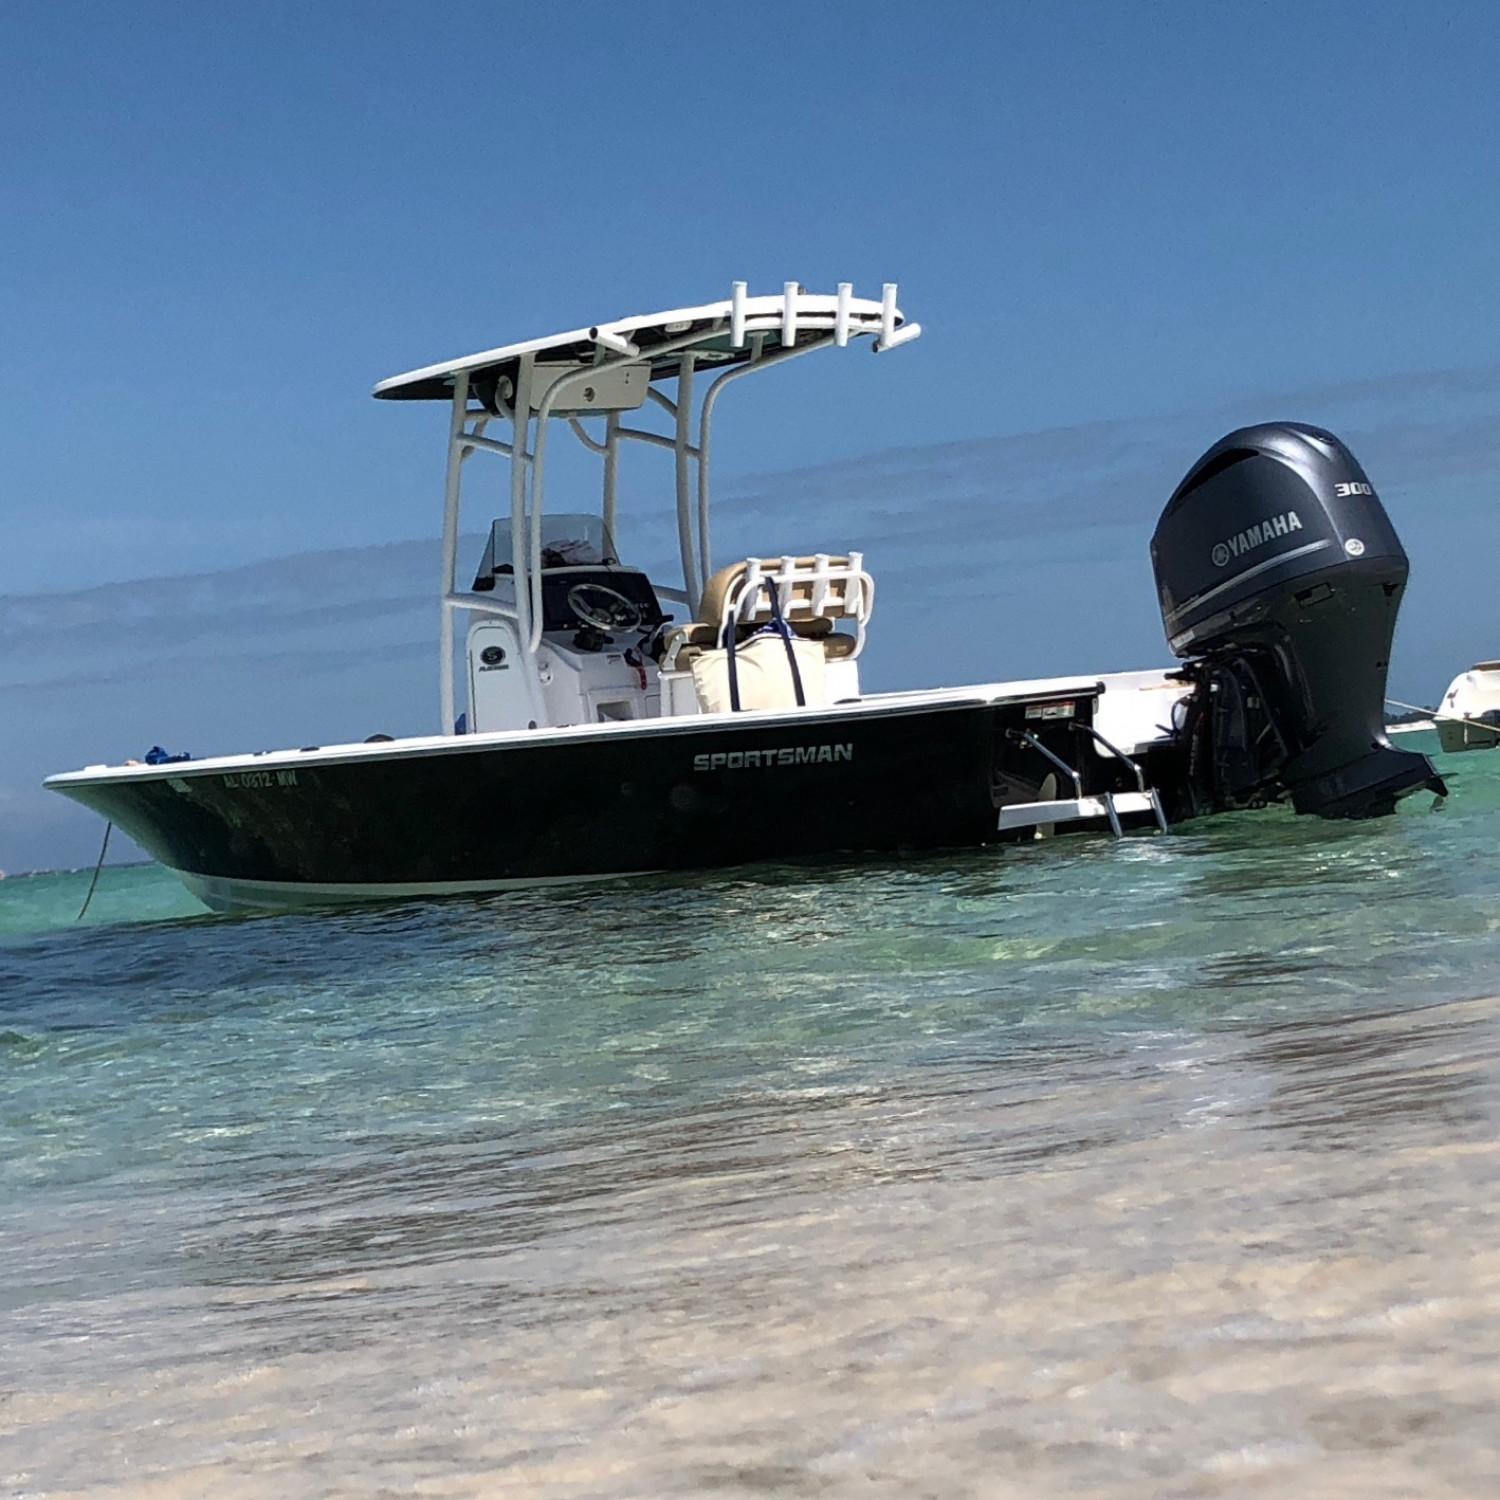 Title: Spring break in Qrange Beach,AL - On board their Sportsman Masters 247 Bay Boat - Location: Orange Beach, AL. Participating in the Photo Contest #SportsmanApril2018